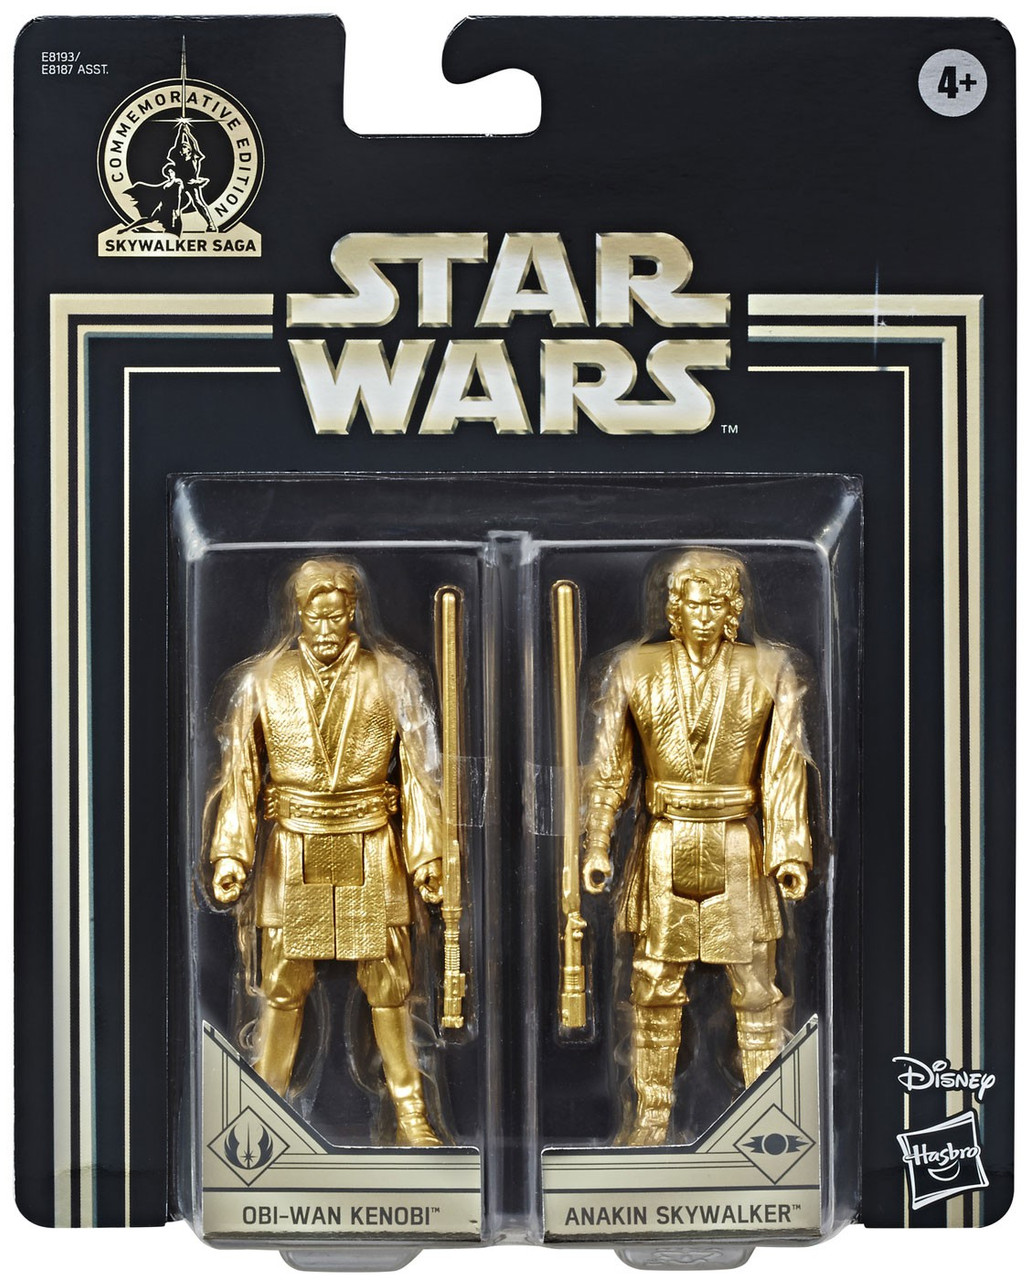 Star Wars Revenge Of The Sith Skywalker Saga Obi Wan Kenobi Anakin Skywalker 3 75 Action Figure 2 Pack Gold Figures Hasbro Toys Toywiz